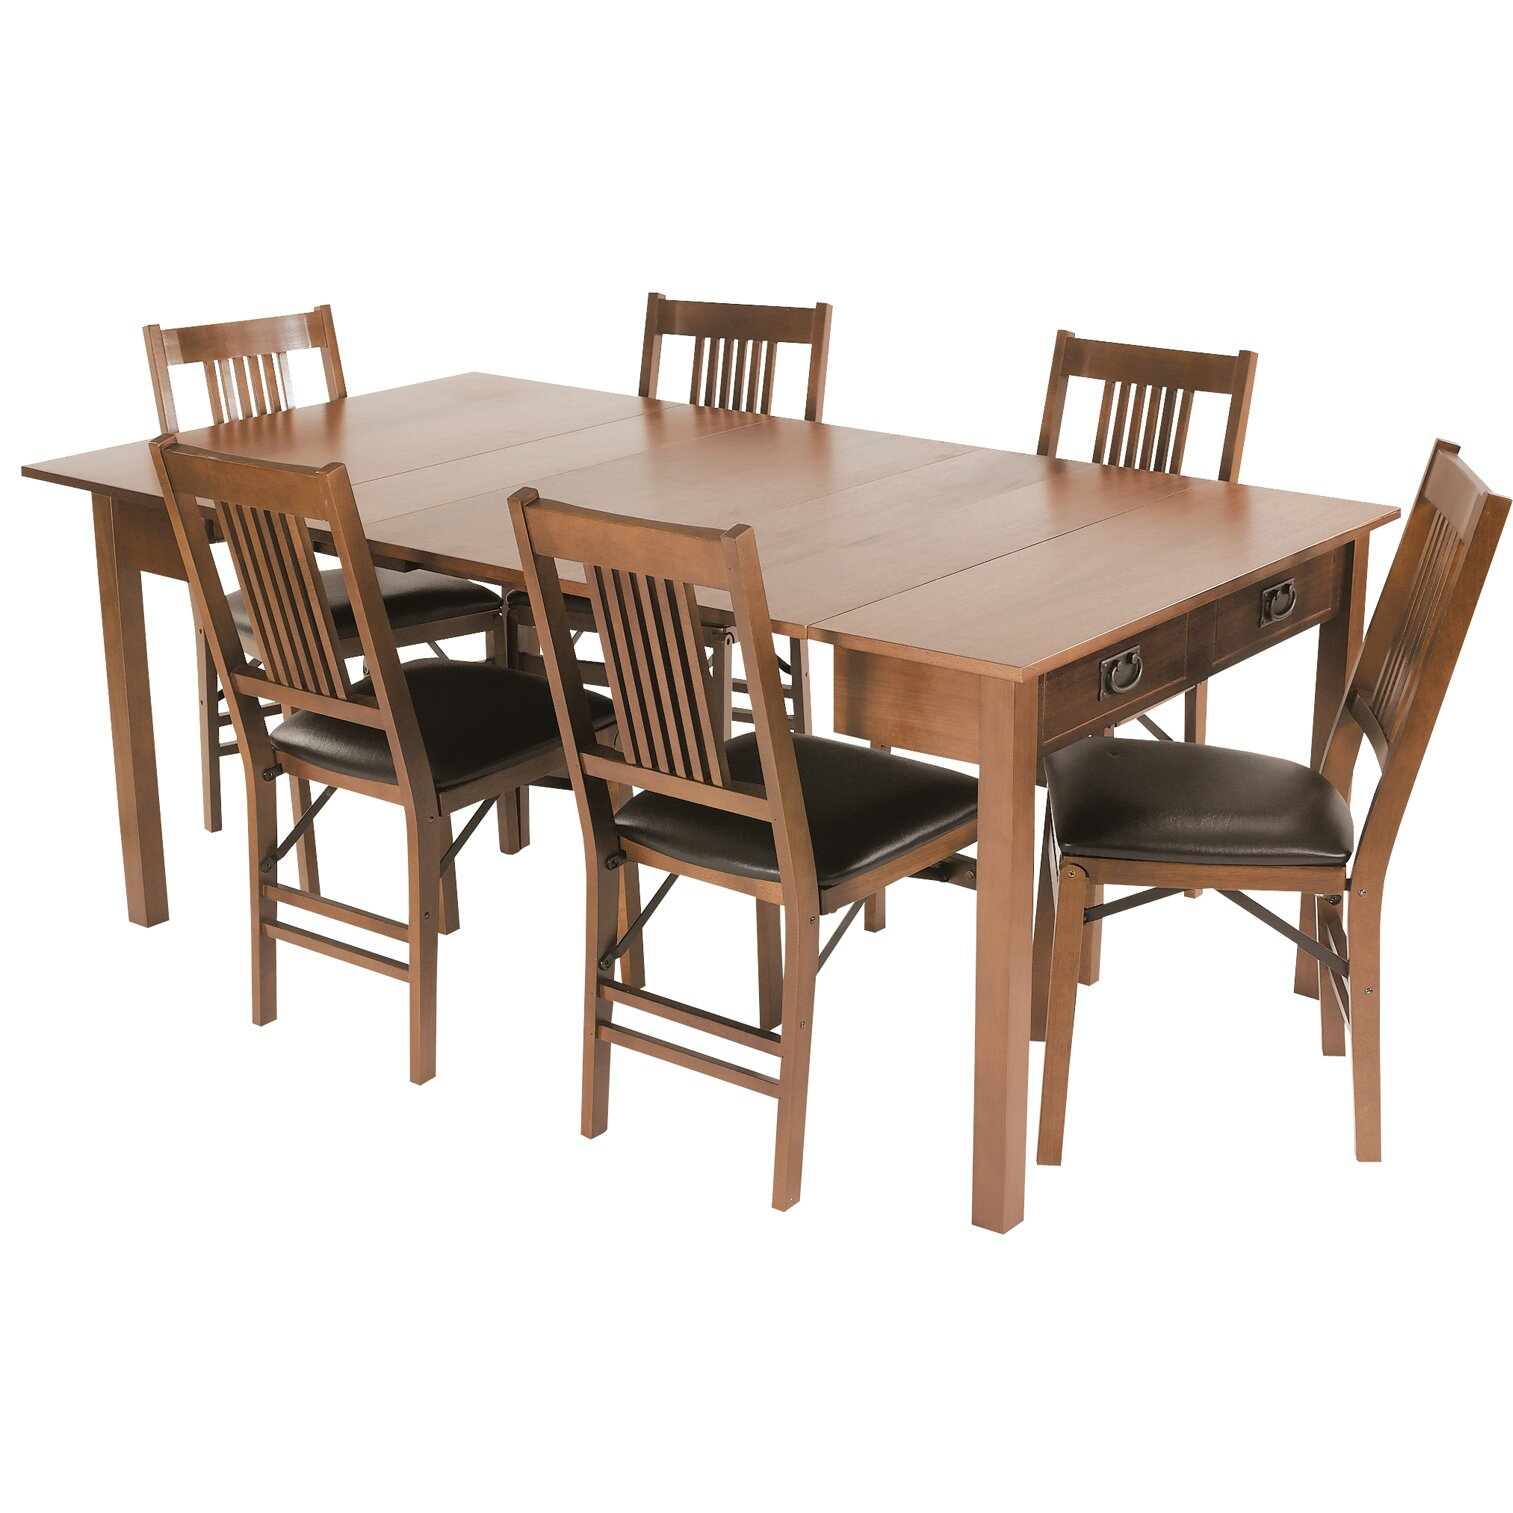 stakmore mission style expanding dining table reviews wayfair. Black Bedroom Furniture Sets. Home Design Ideas